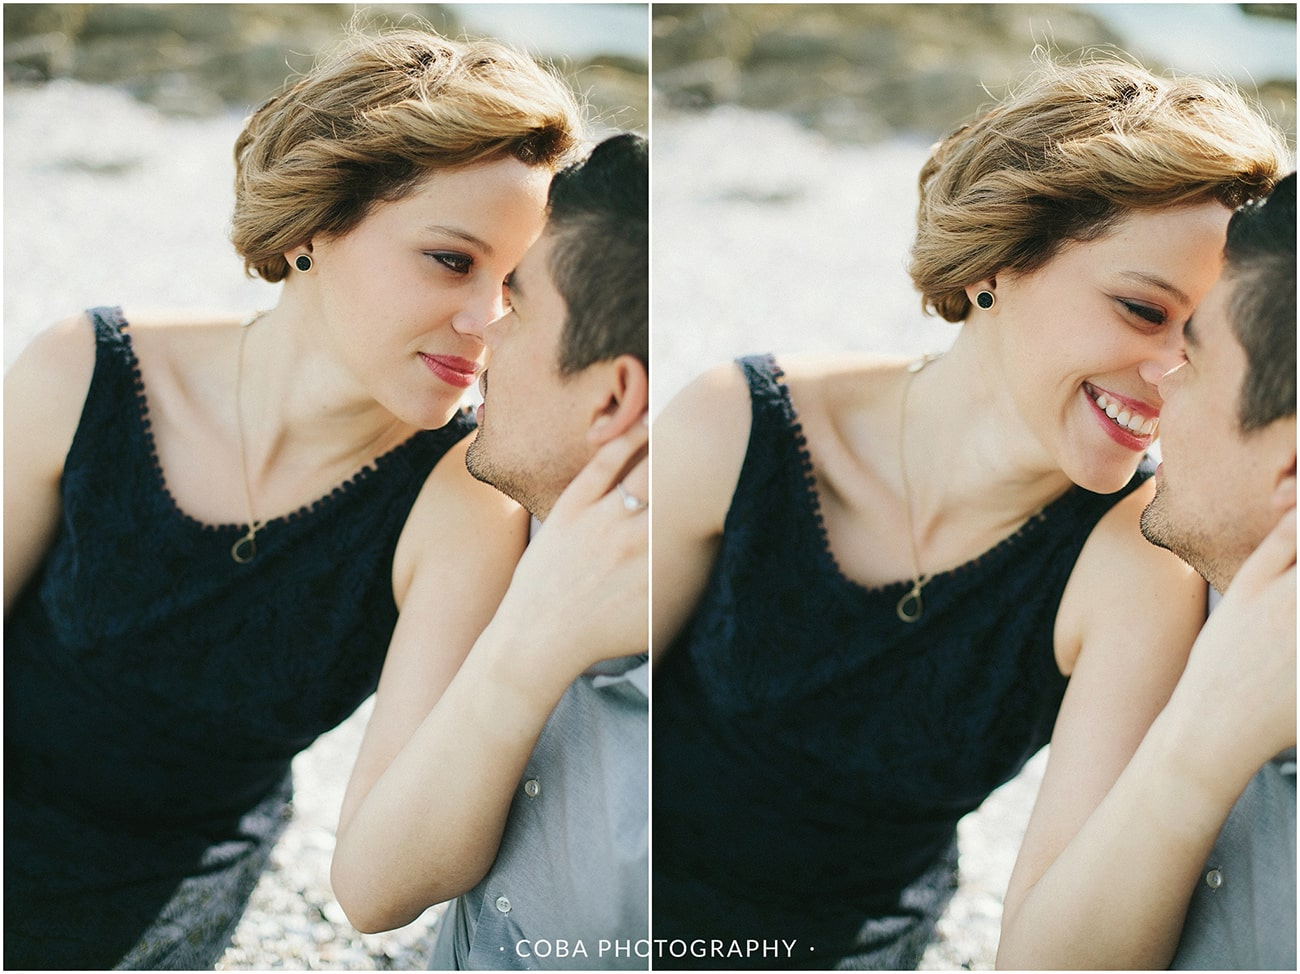 Fernando&taime - engaged - coba photography (12)